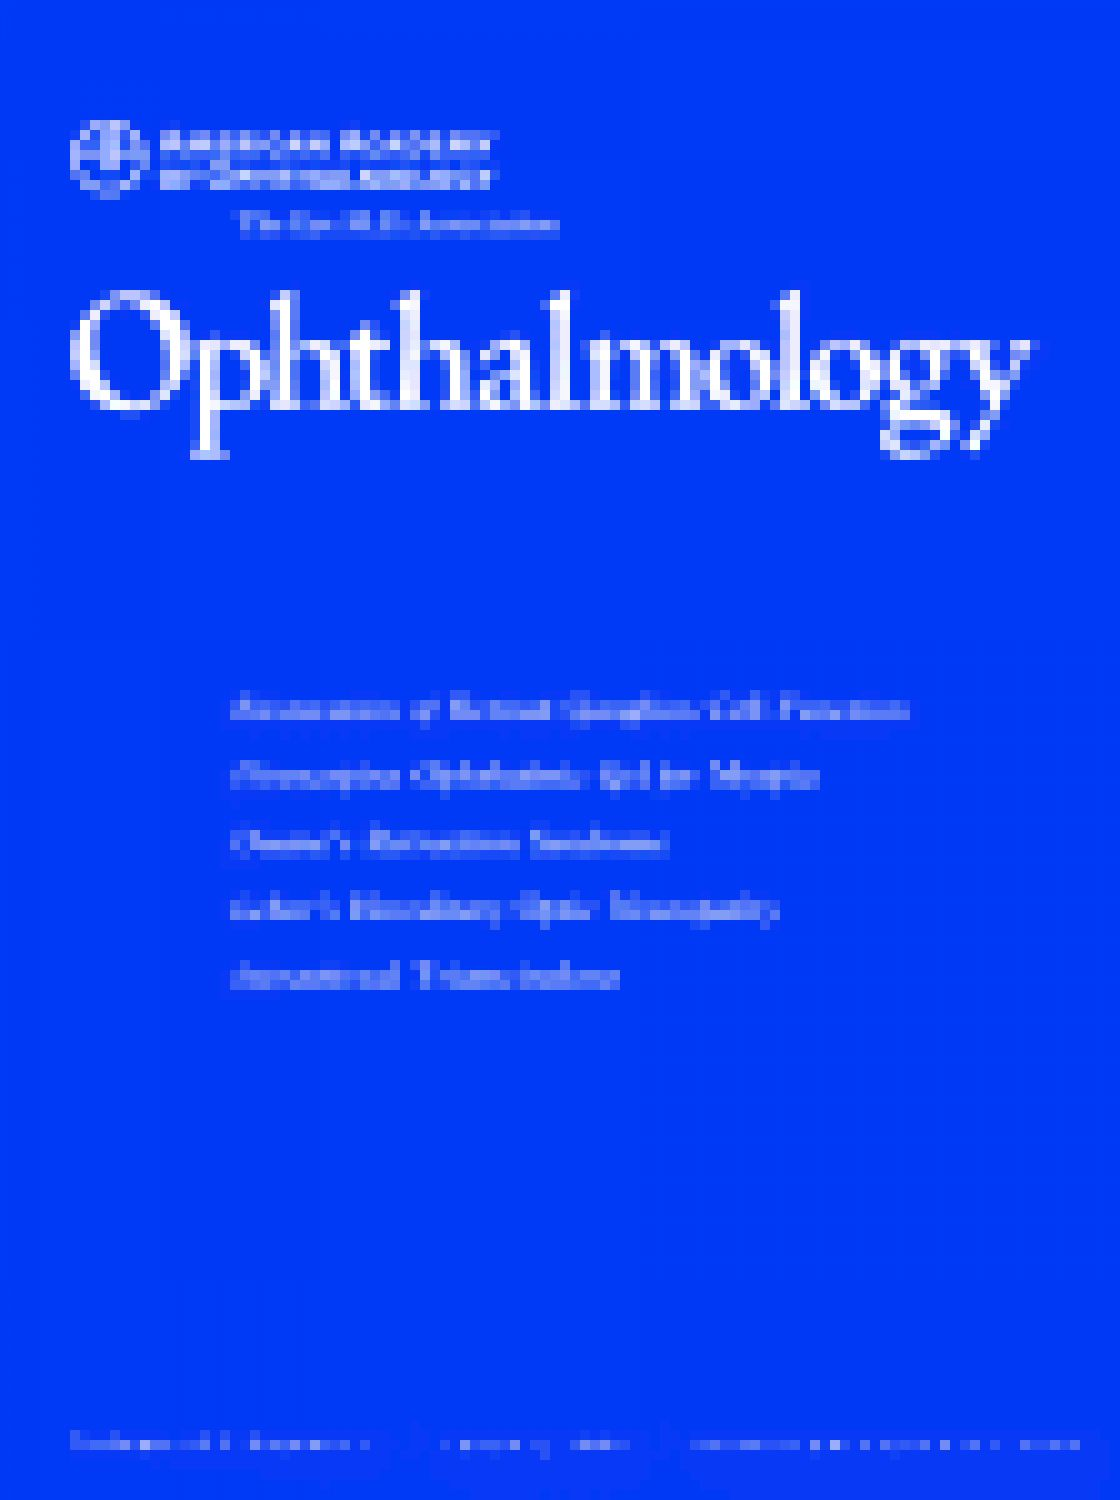 Retinal nerve fiber layer evaluation by optical coherence tomography in Leber's hereditary optic neuropathy